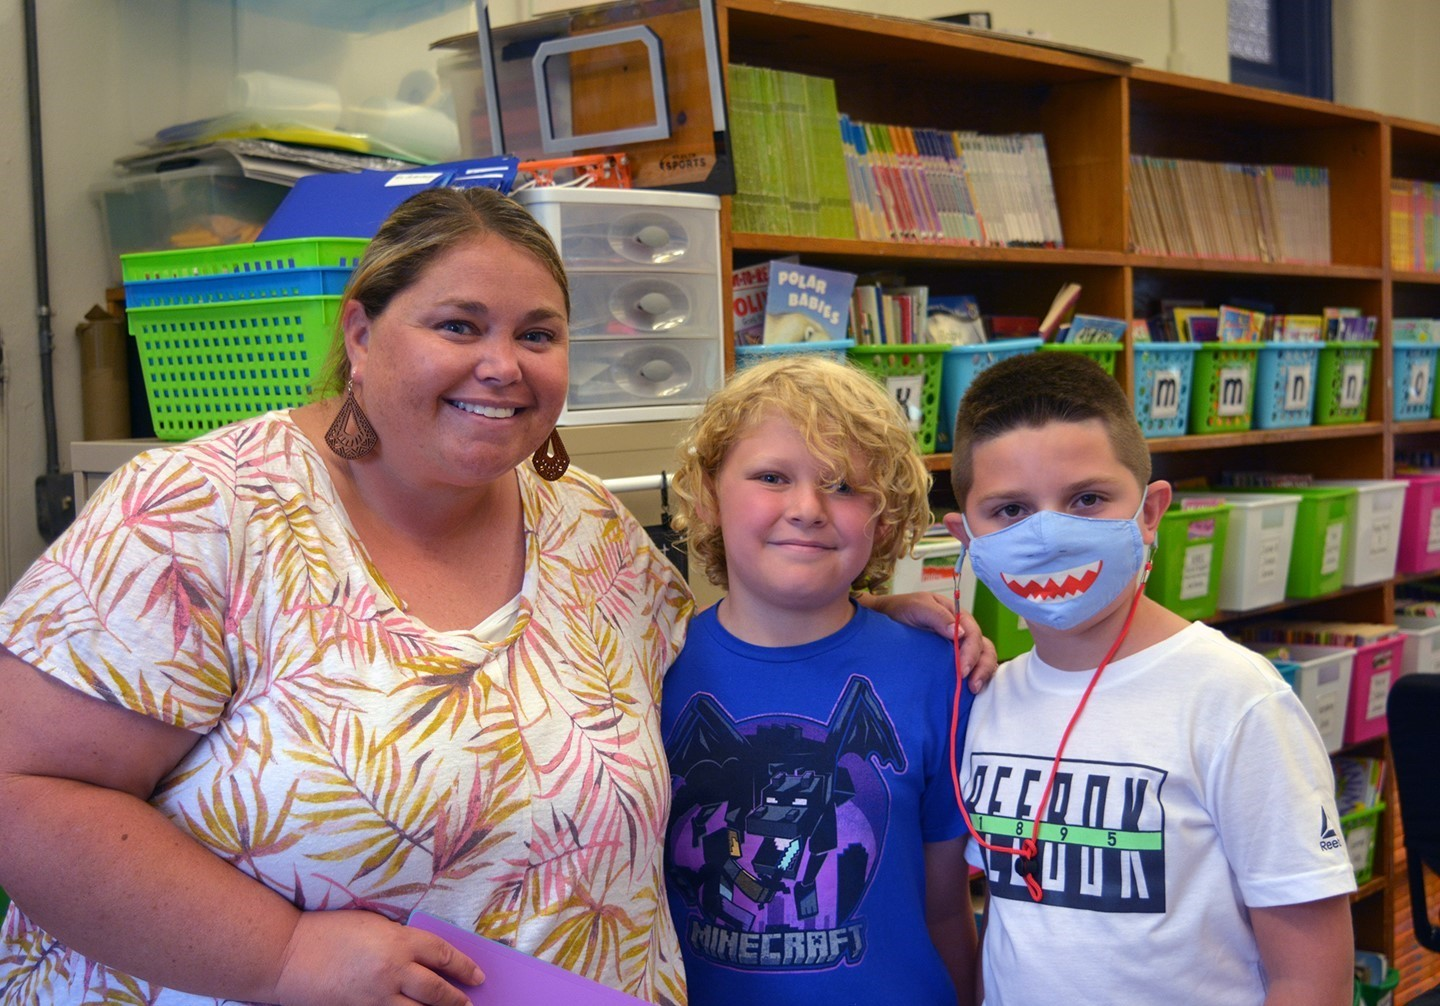 Mrs. Melton and two of her students.